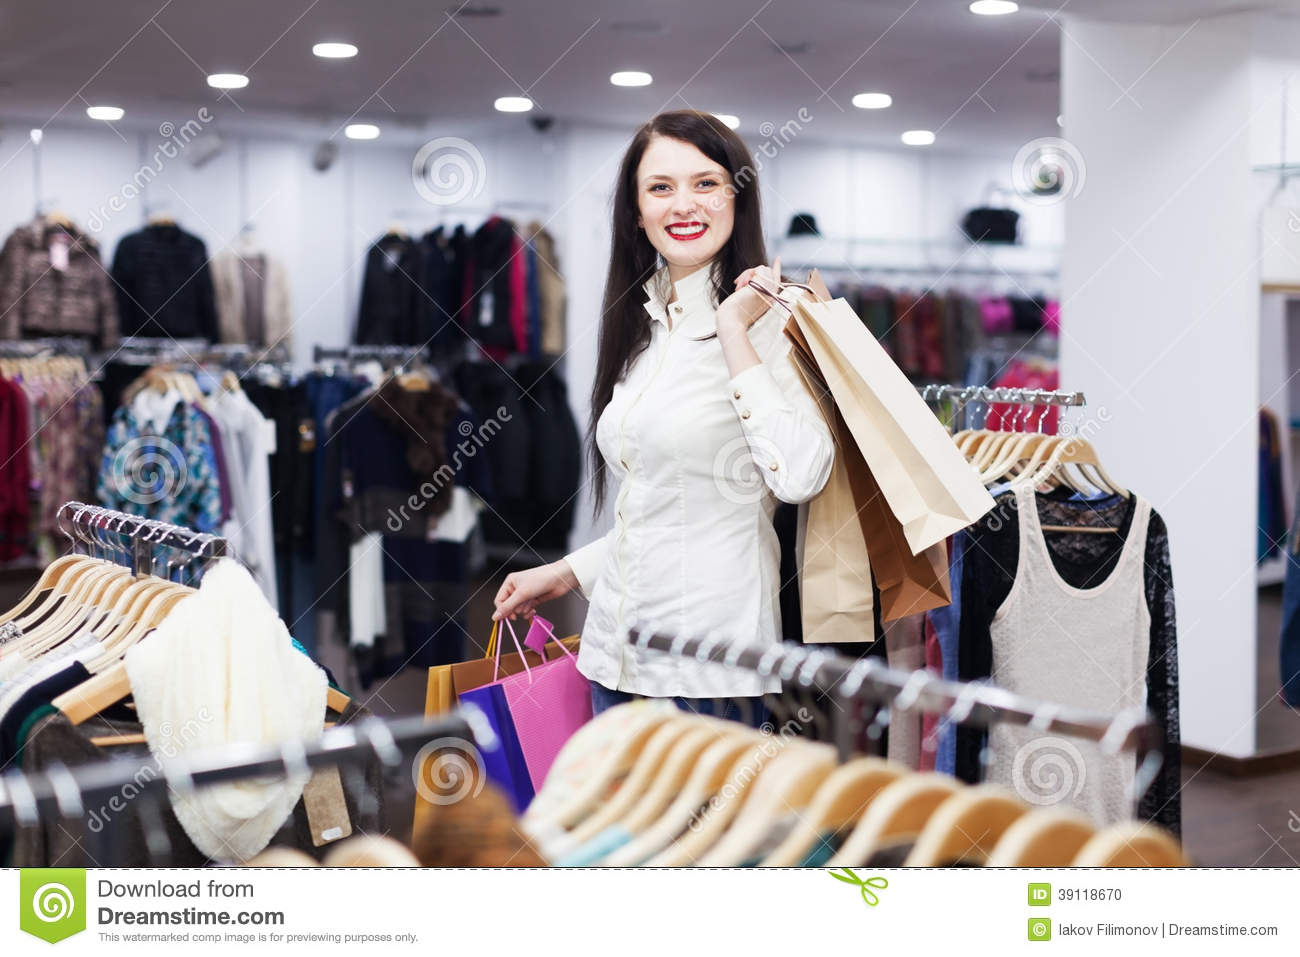 Clothing Stores For Girl